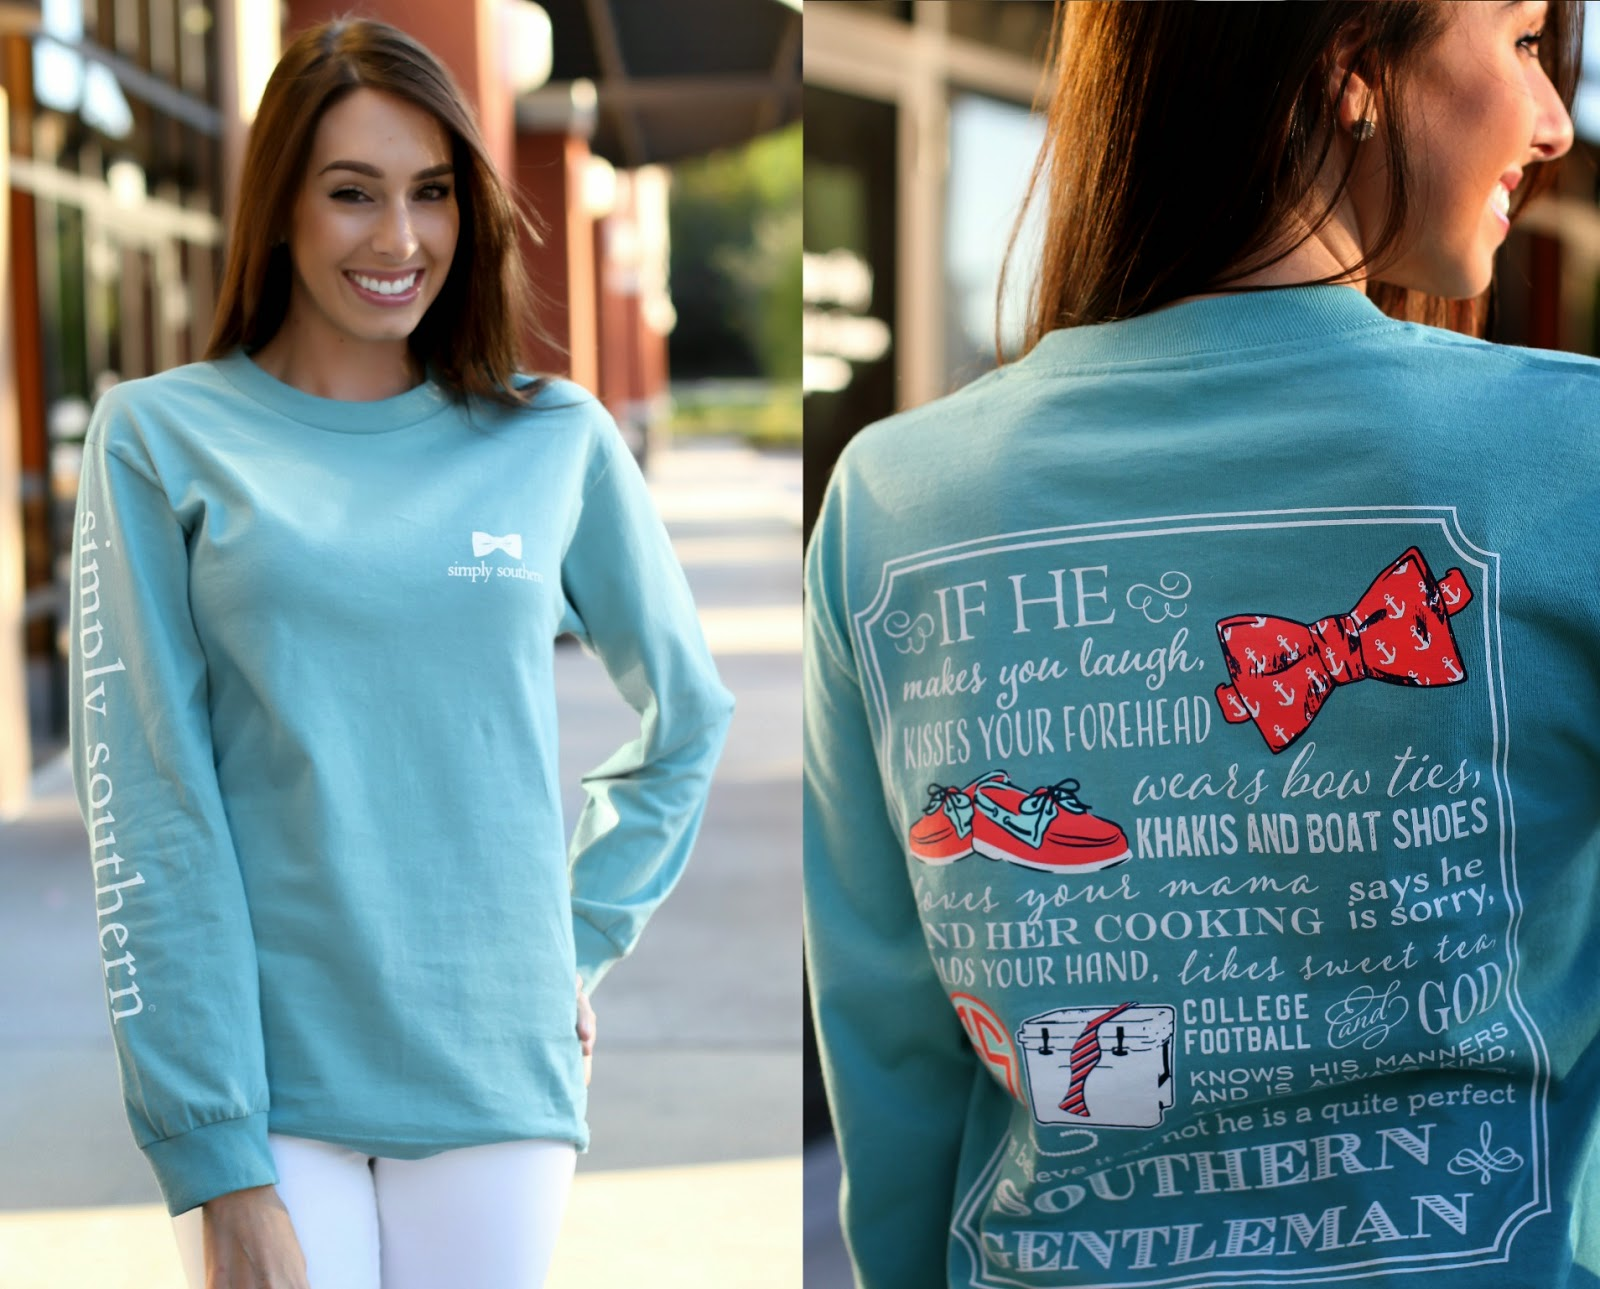 Our Simply Southern Southern Darlin Tees Make Great Grifts For Christmas Short Sleeves Are 20 And Long Sleeves Range From 25 30